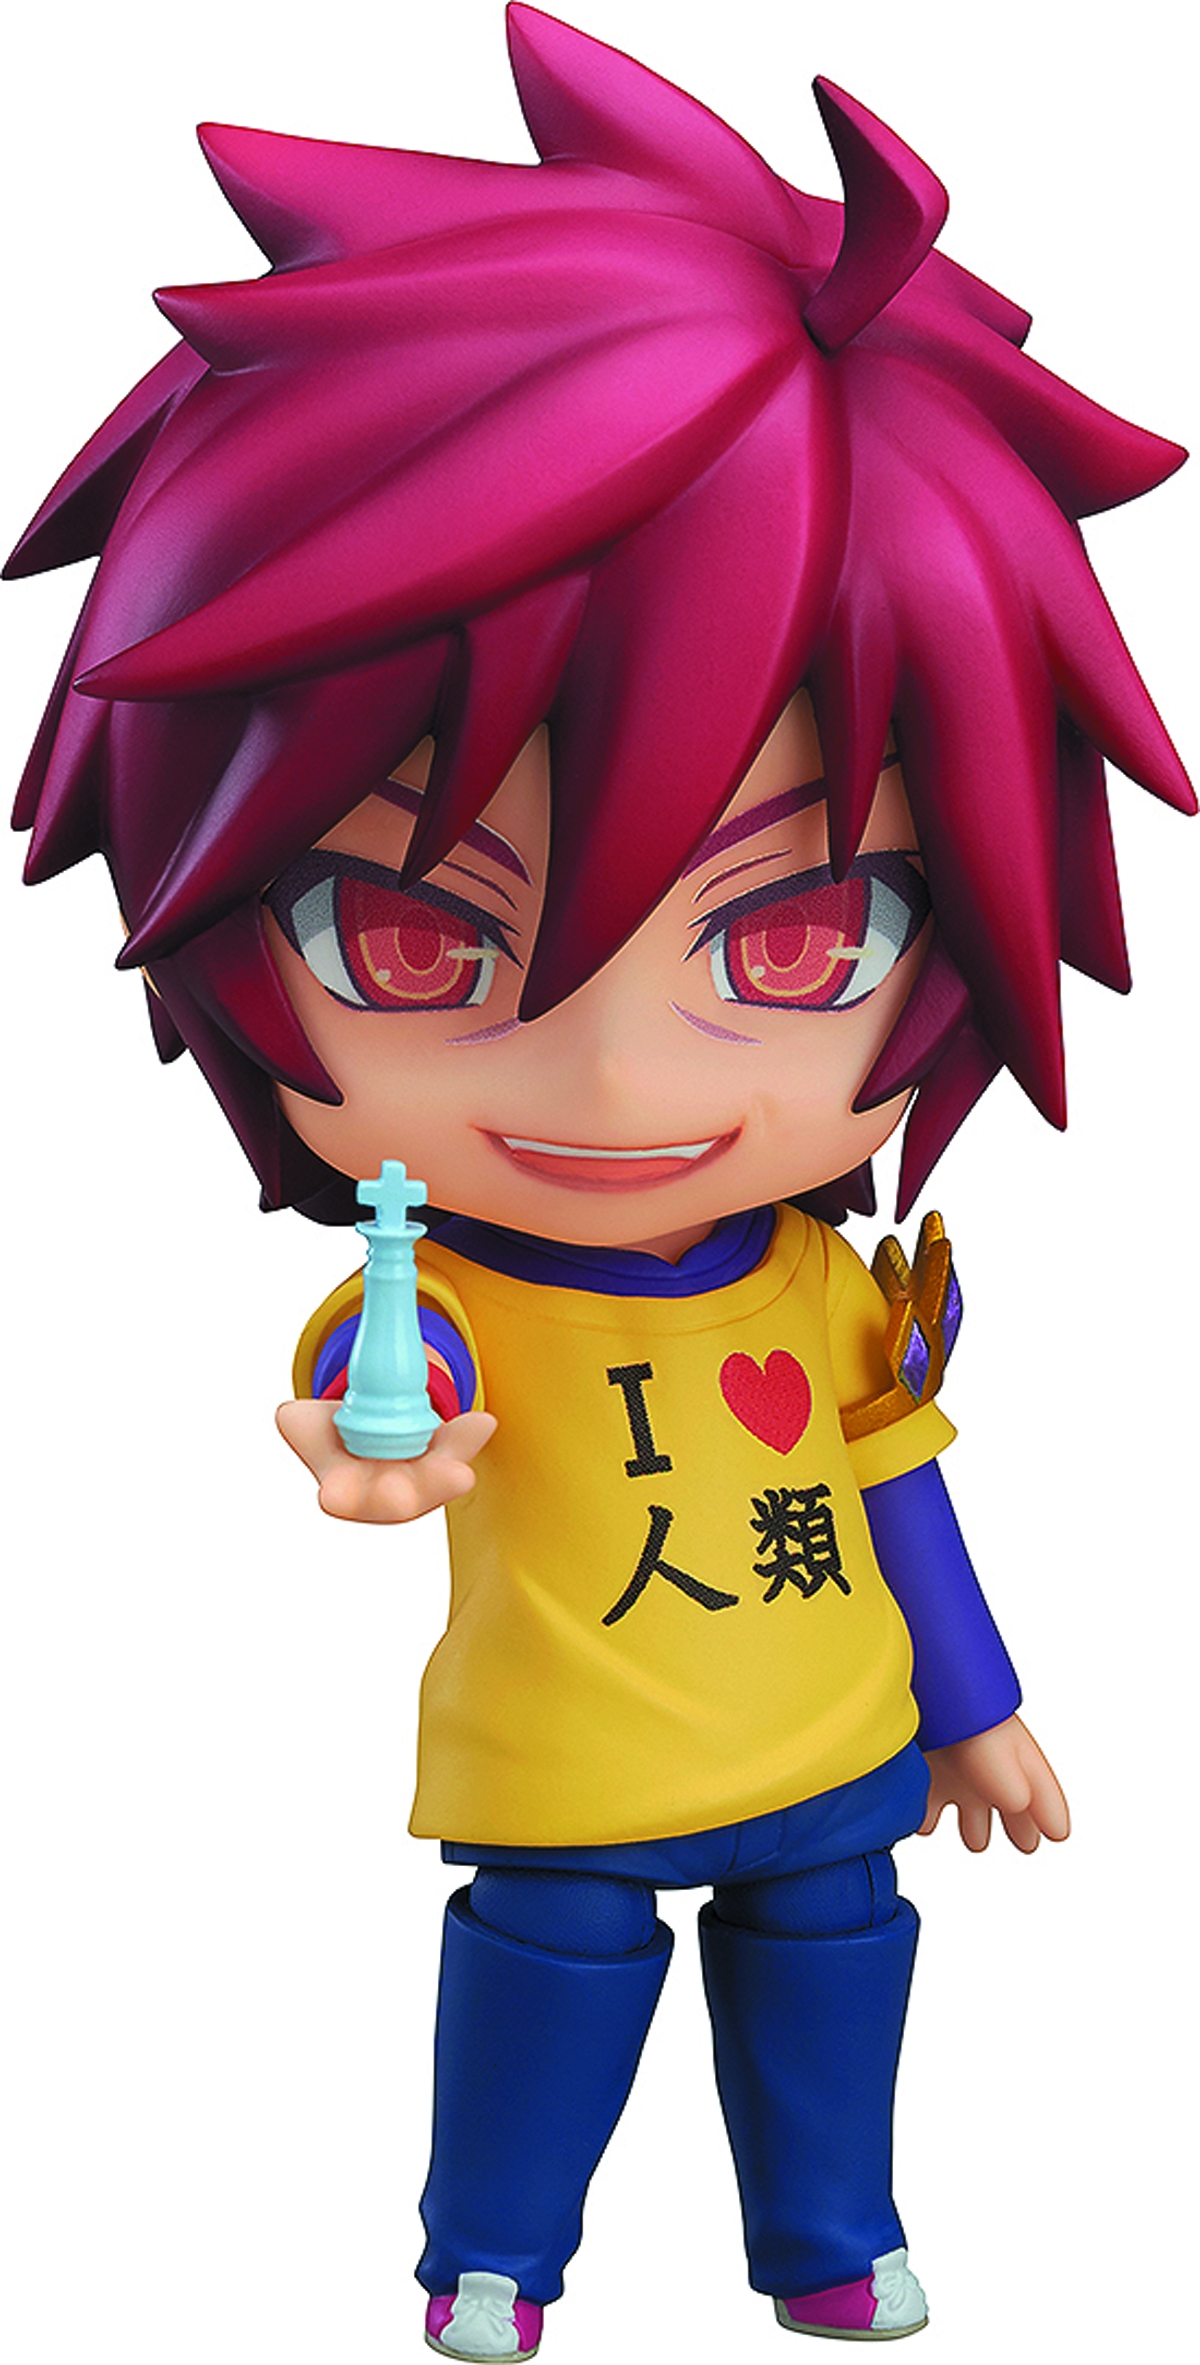 No Game No Life: Sora (Nendoroid)